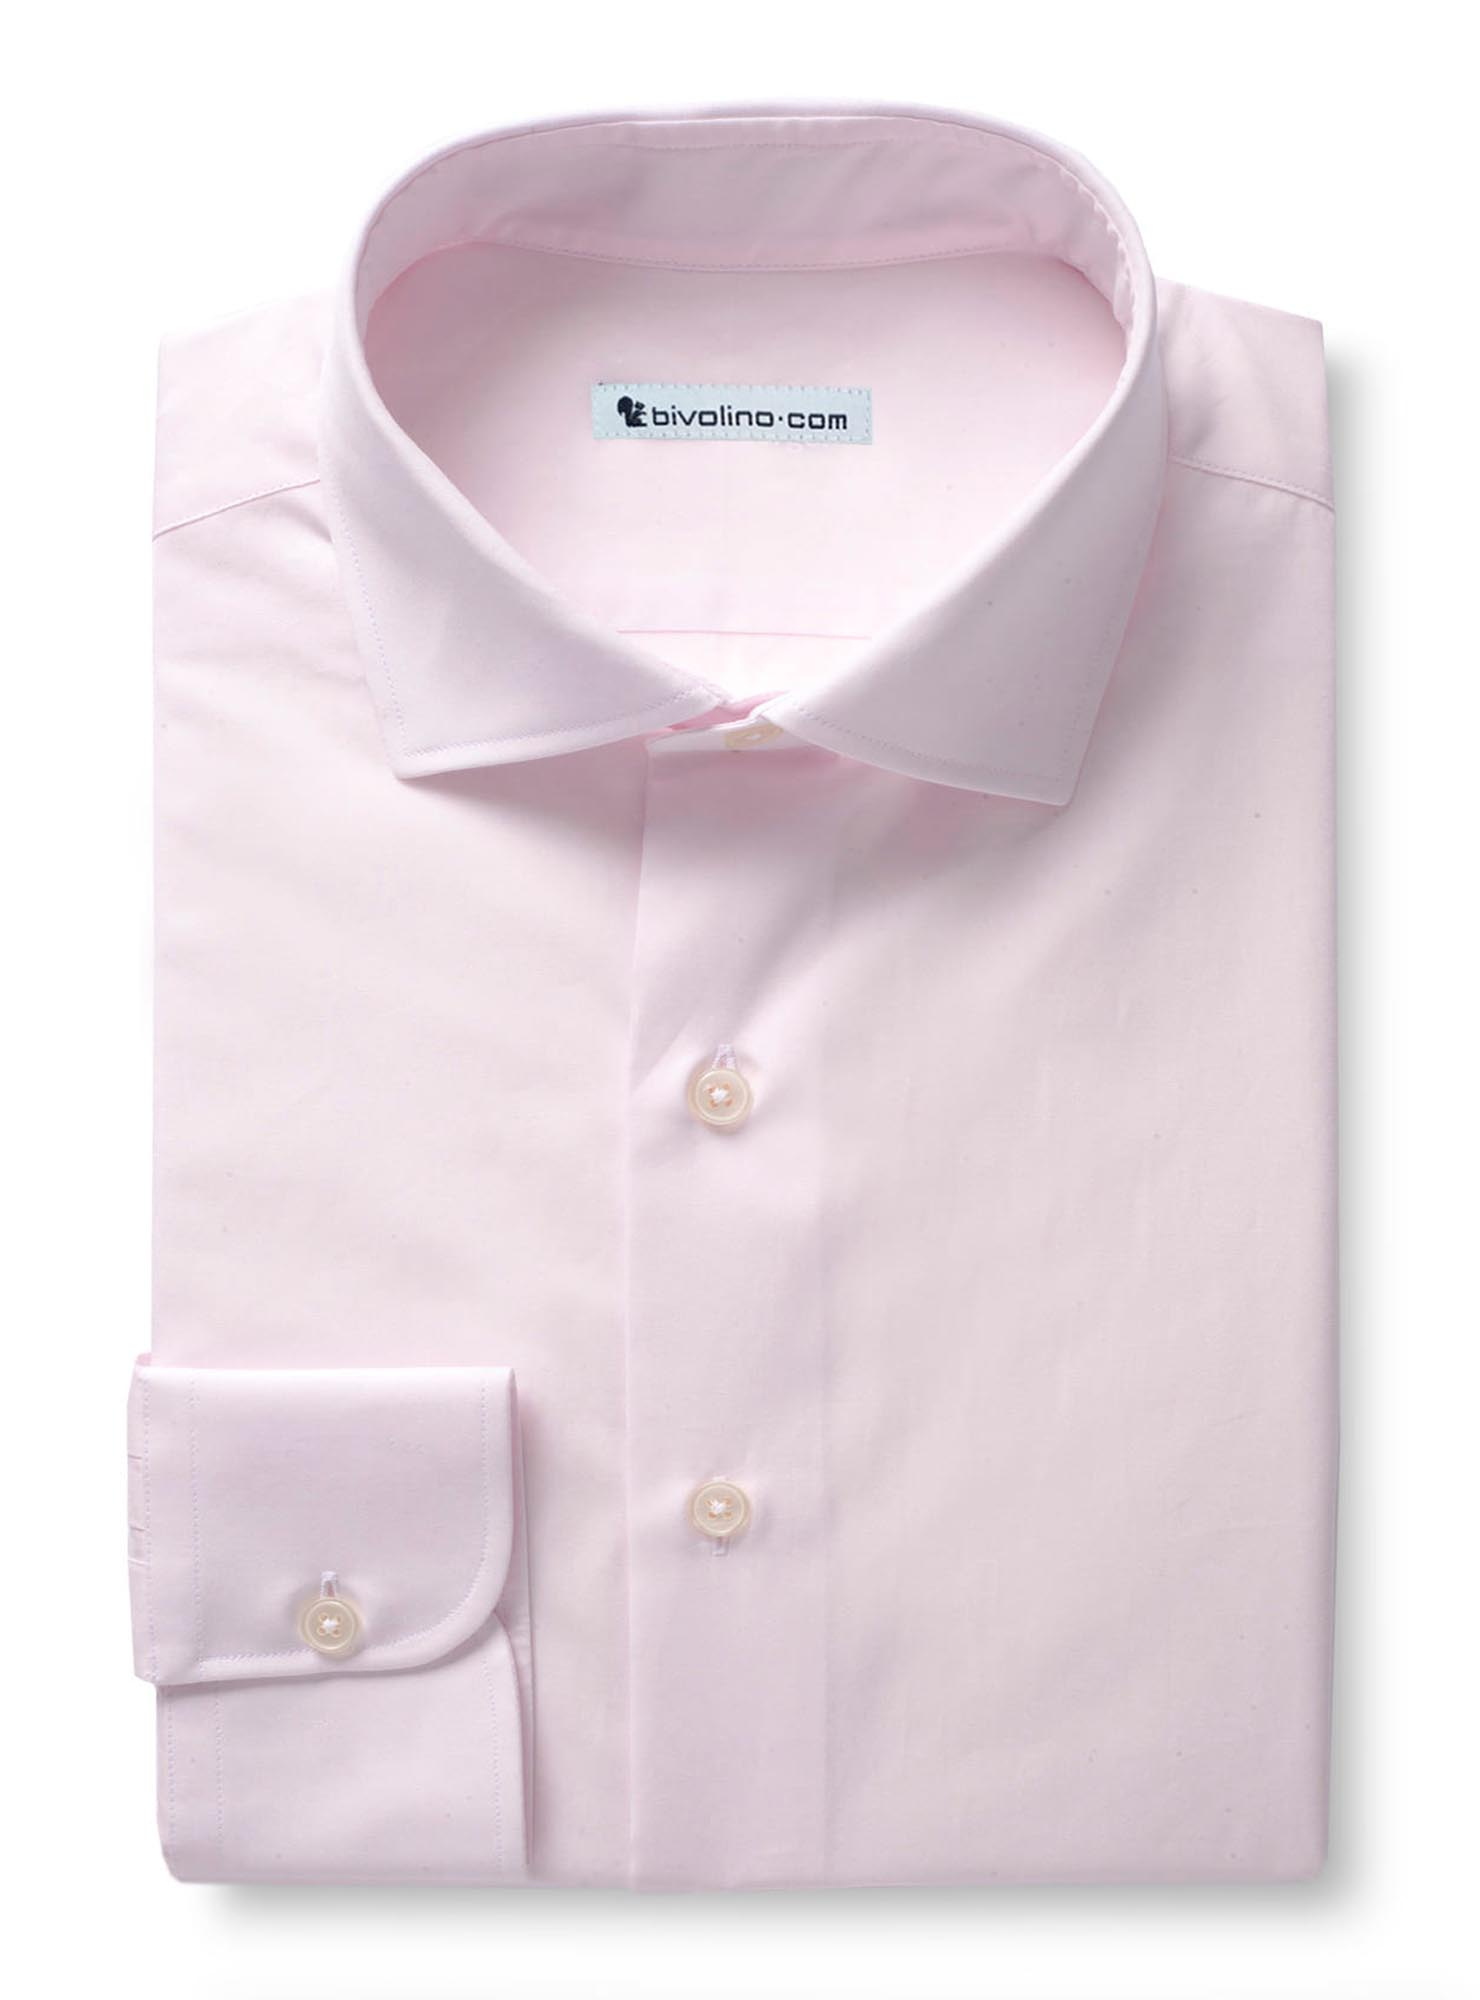 QURRI - Plain pale pink pin-point shirt - Easy ironing - OFFERD 2